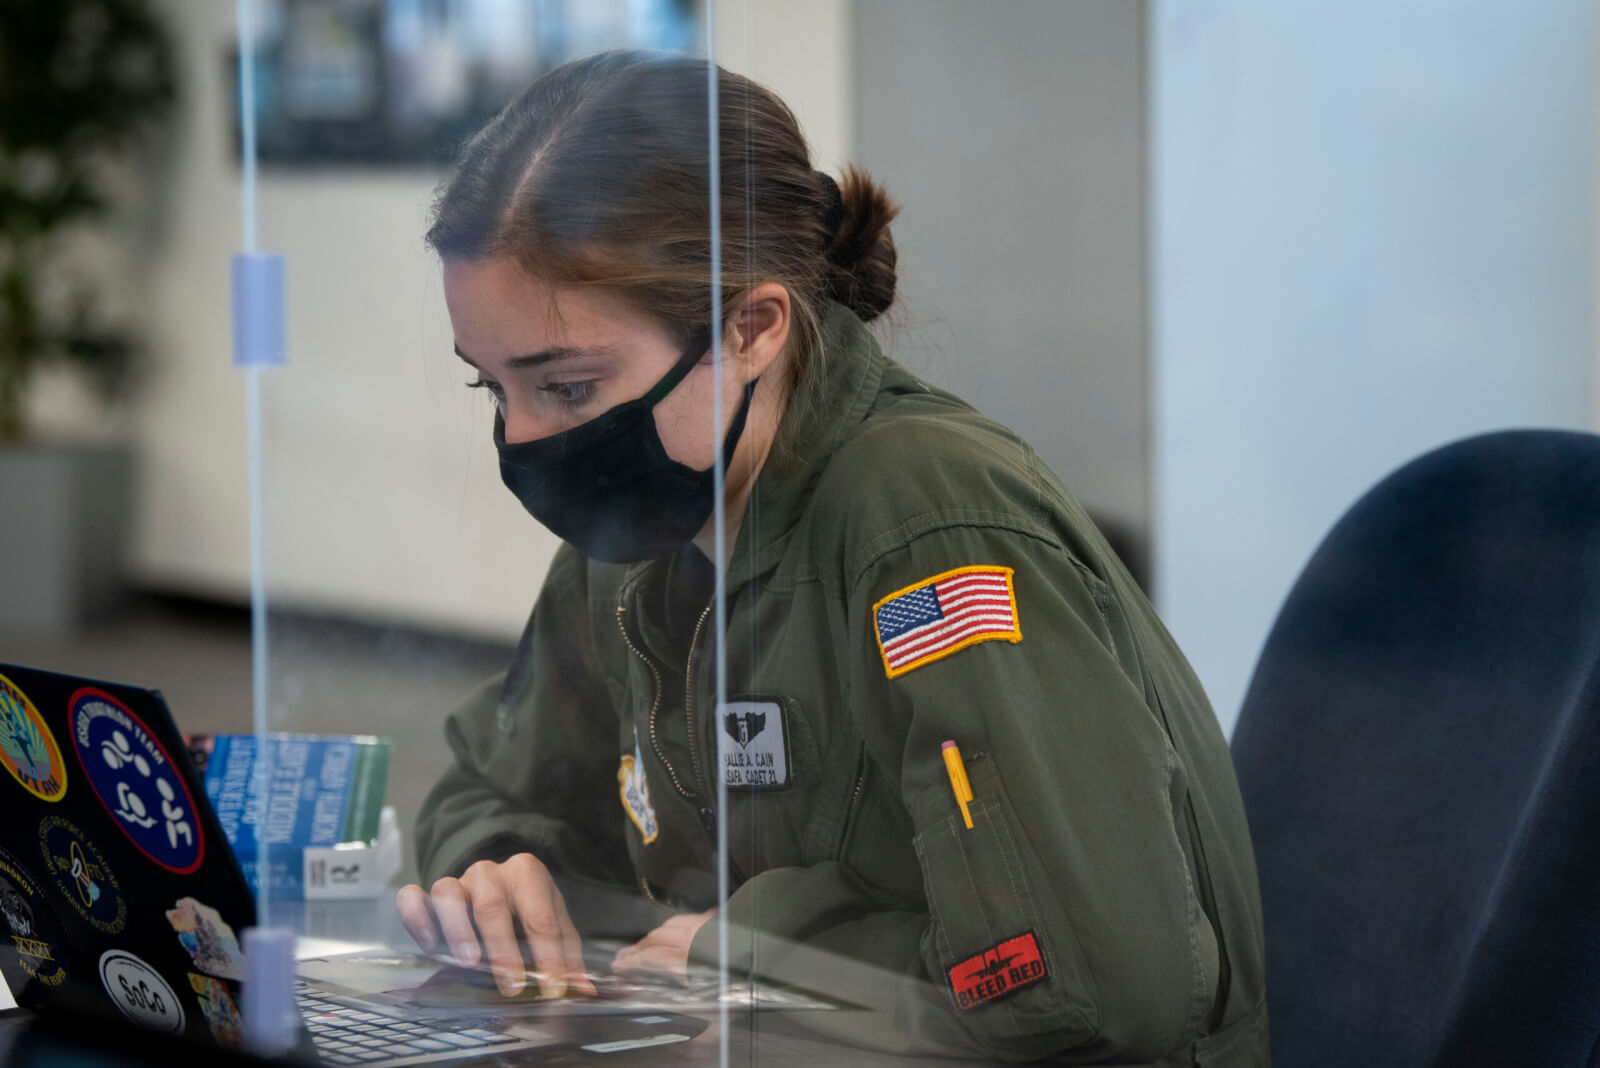 Cadet at laptop computer with Plexiglass shield